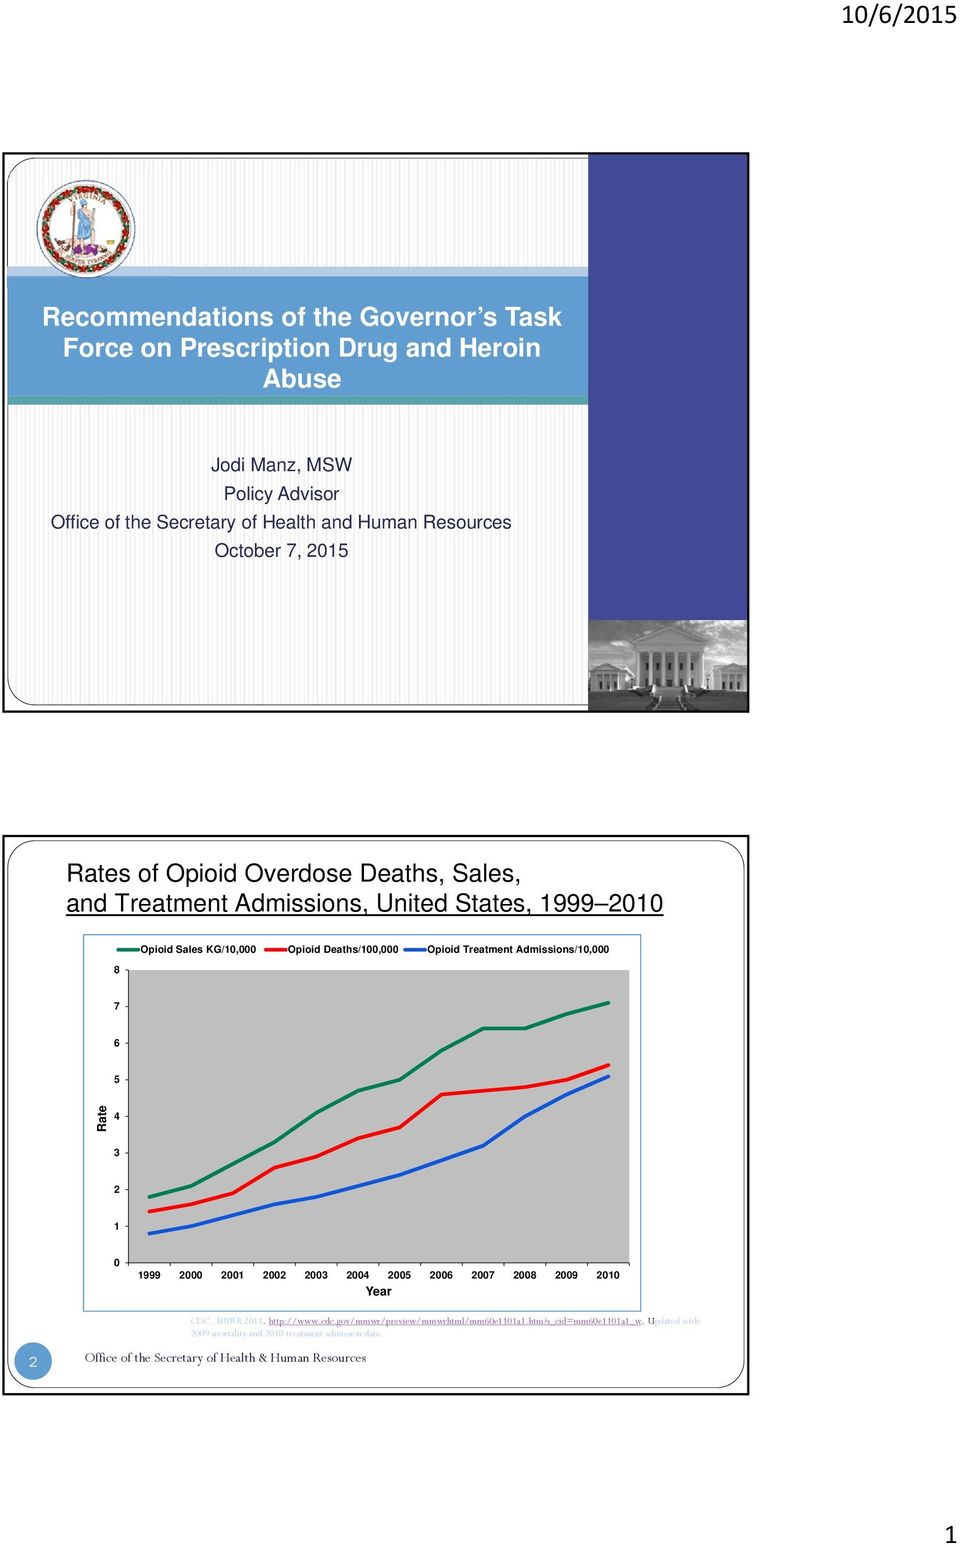 Treatment Opioid Sales KG/10,000 Opioid Deaths/100,000 Opioid Treatment Admissions/10,000 8 7 6 5 Rate 4 3 2 1 0 1999 2000 2001 2002 2003 2004 2005 2006 2007 2008